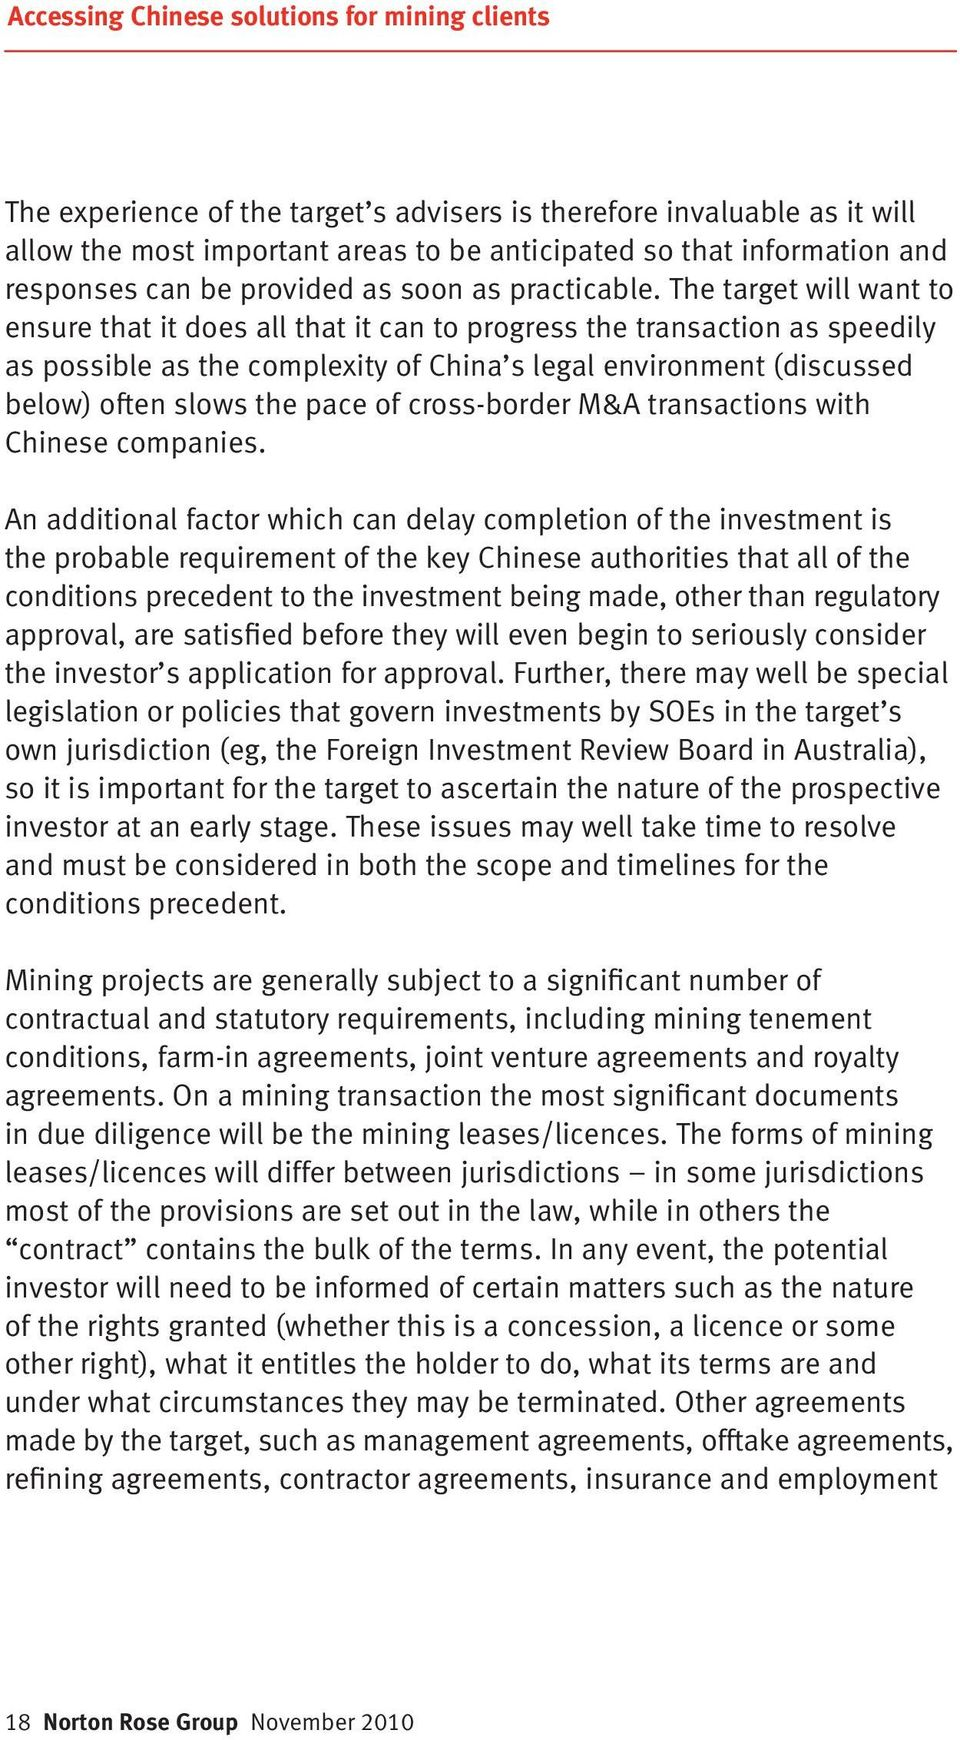 The target will want to ensure that it does all that it can to progress the transaction as speedily as possible as the complexity of China s legal environment (discussed below) often slows the pace